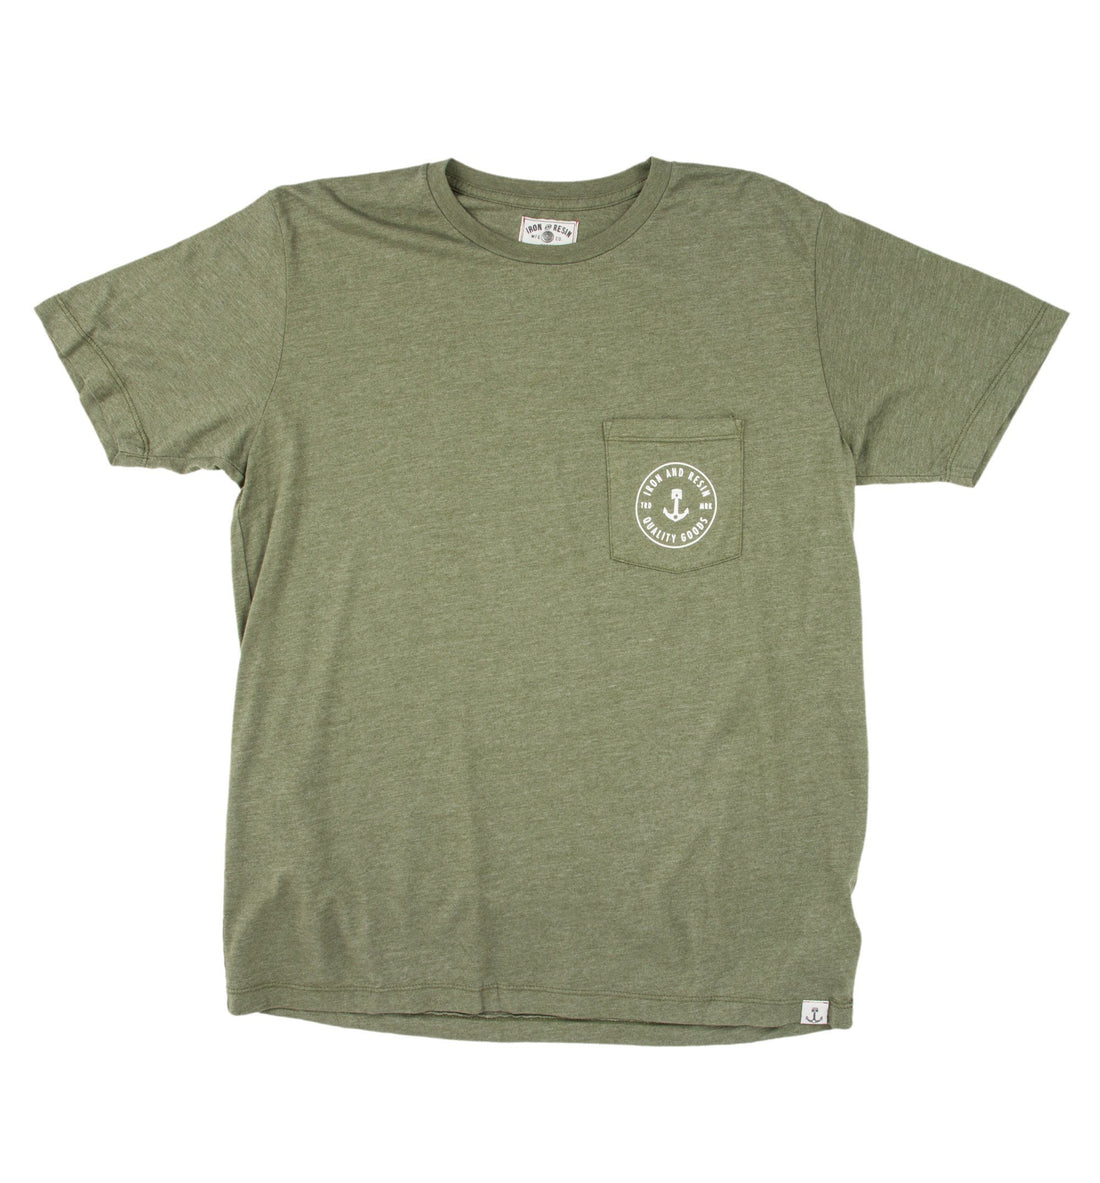 Woodland Pocket Tee - Tops - Iron and Resin